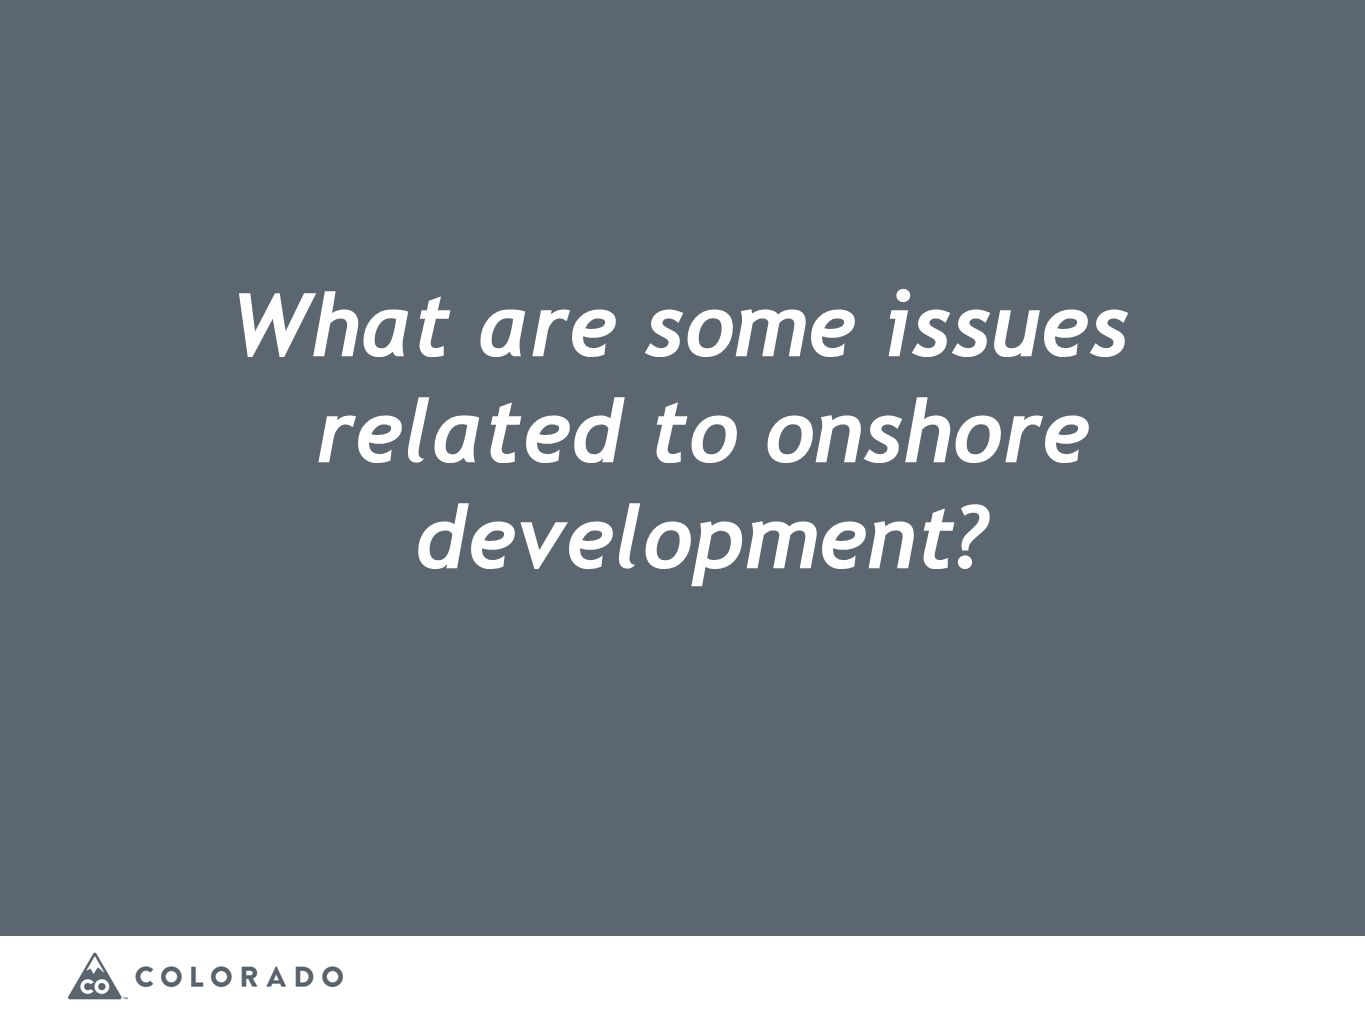 What are some issues related to onshore development